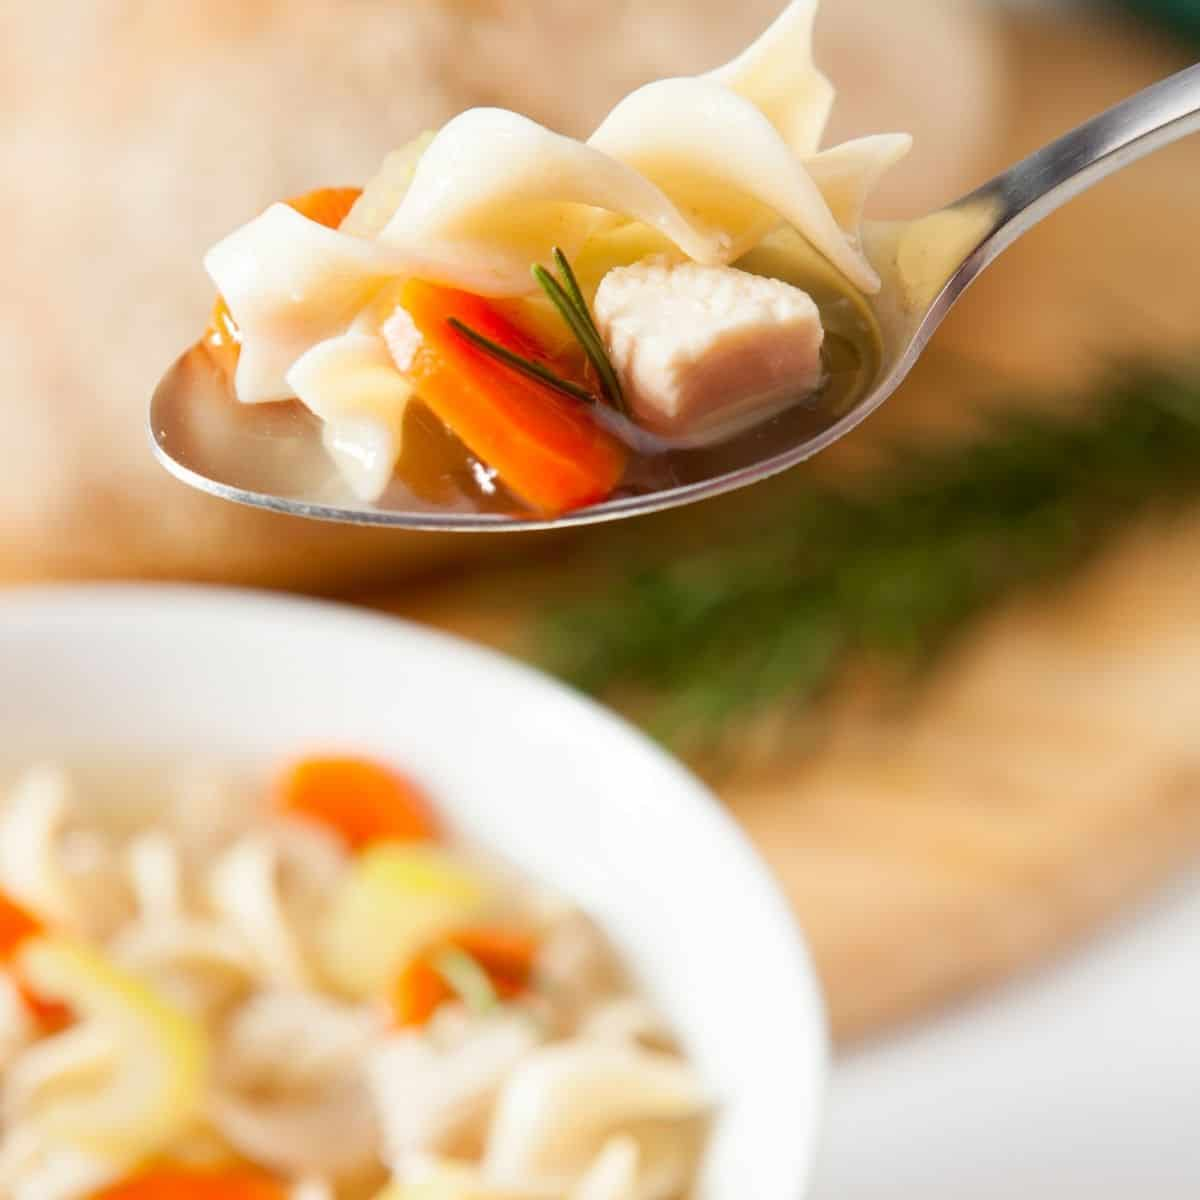 A bowl of chicken noodle soup with a spoon with a serving of noodles chicken and carrots